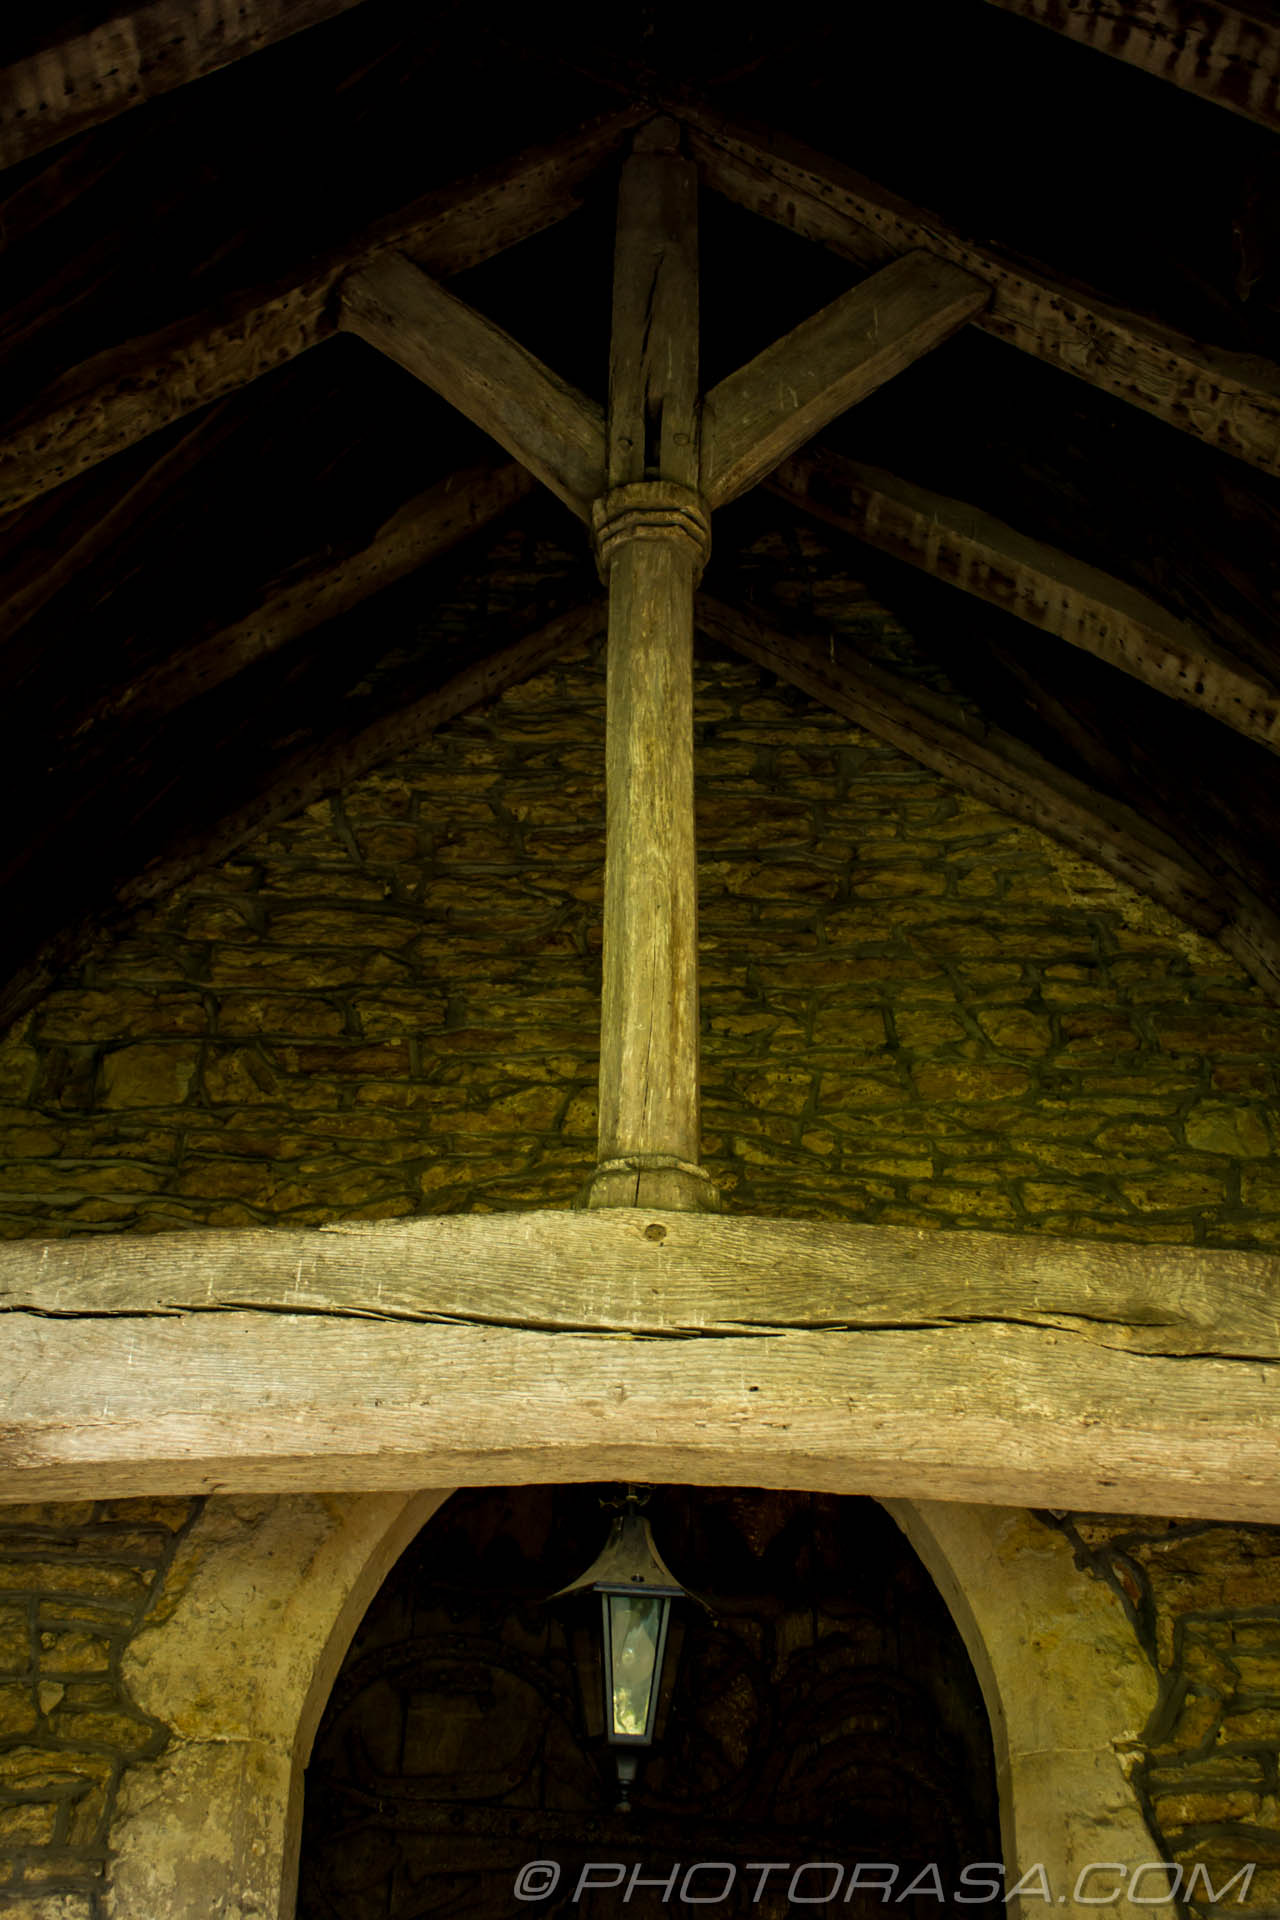 http://photorasa.com/saints-church-staplehurst-kent/medieval-beam/